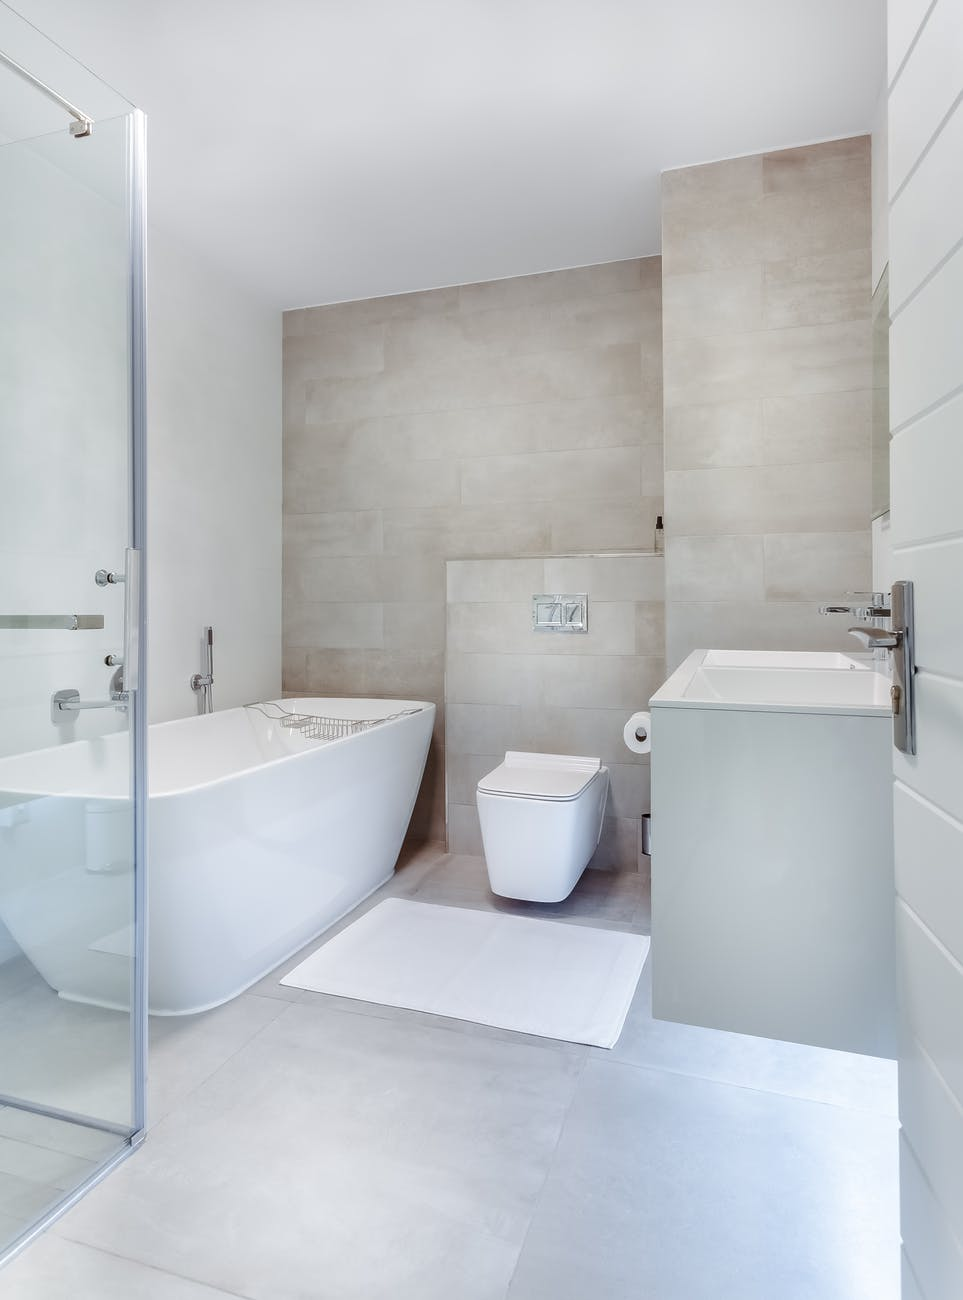 5 Compelling Reasons to Install a Bidet in Your Bathroom